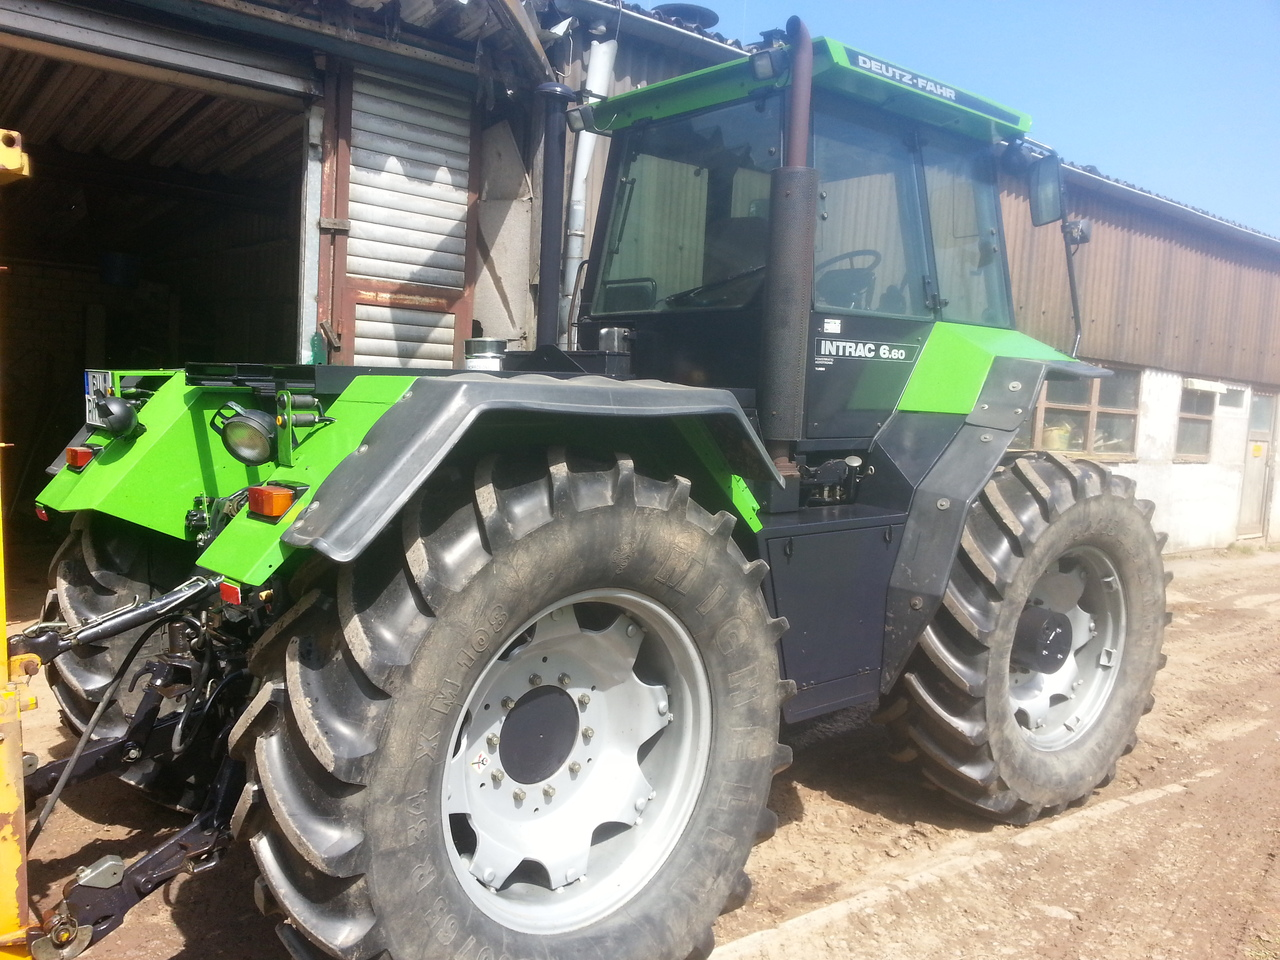 [Deutz-Fahr] trattore Intrac 6.60 Turbo all'interno di un'azienda agricola